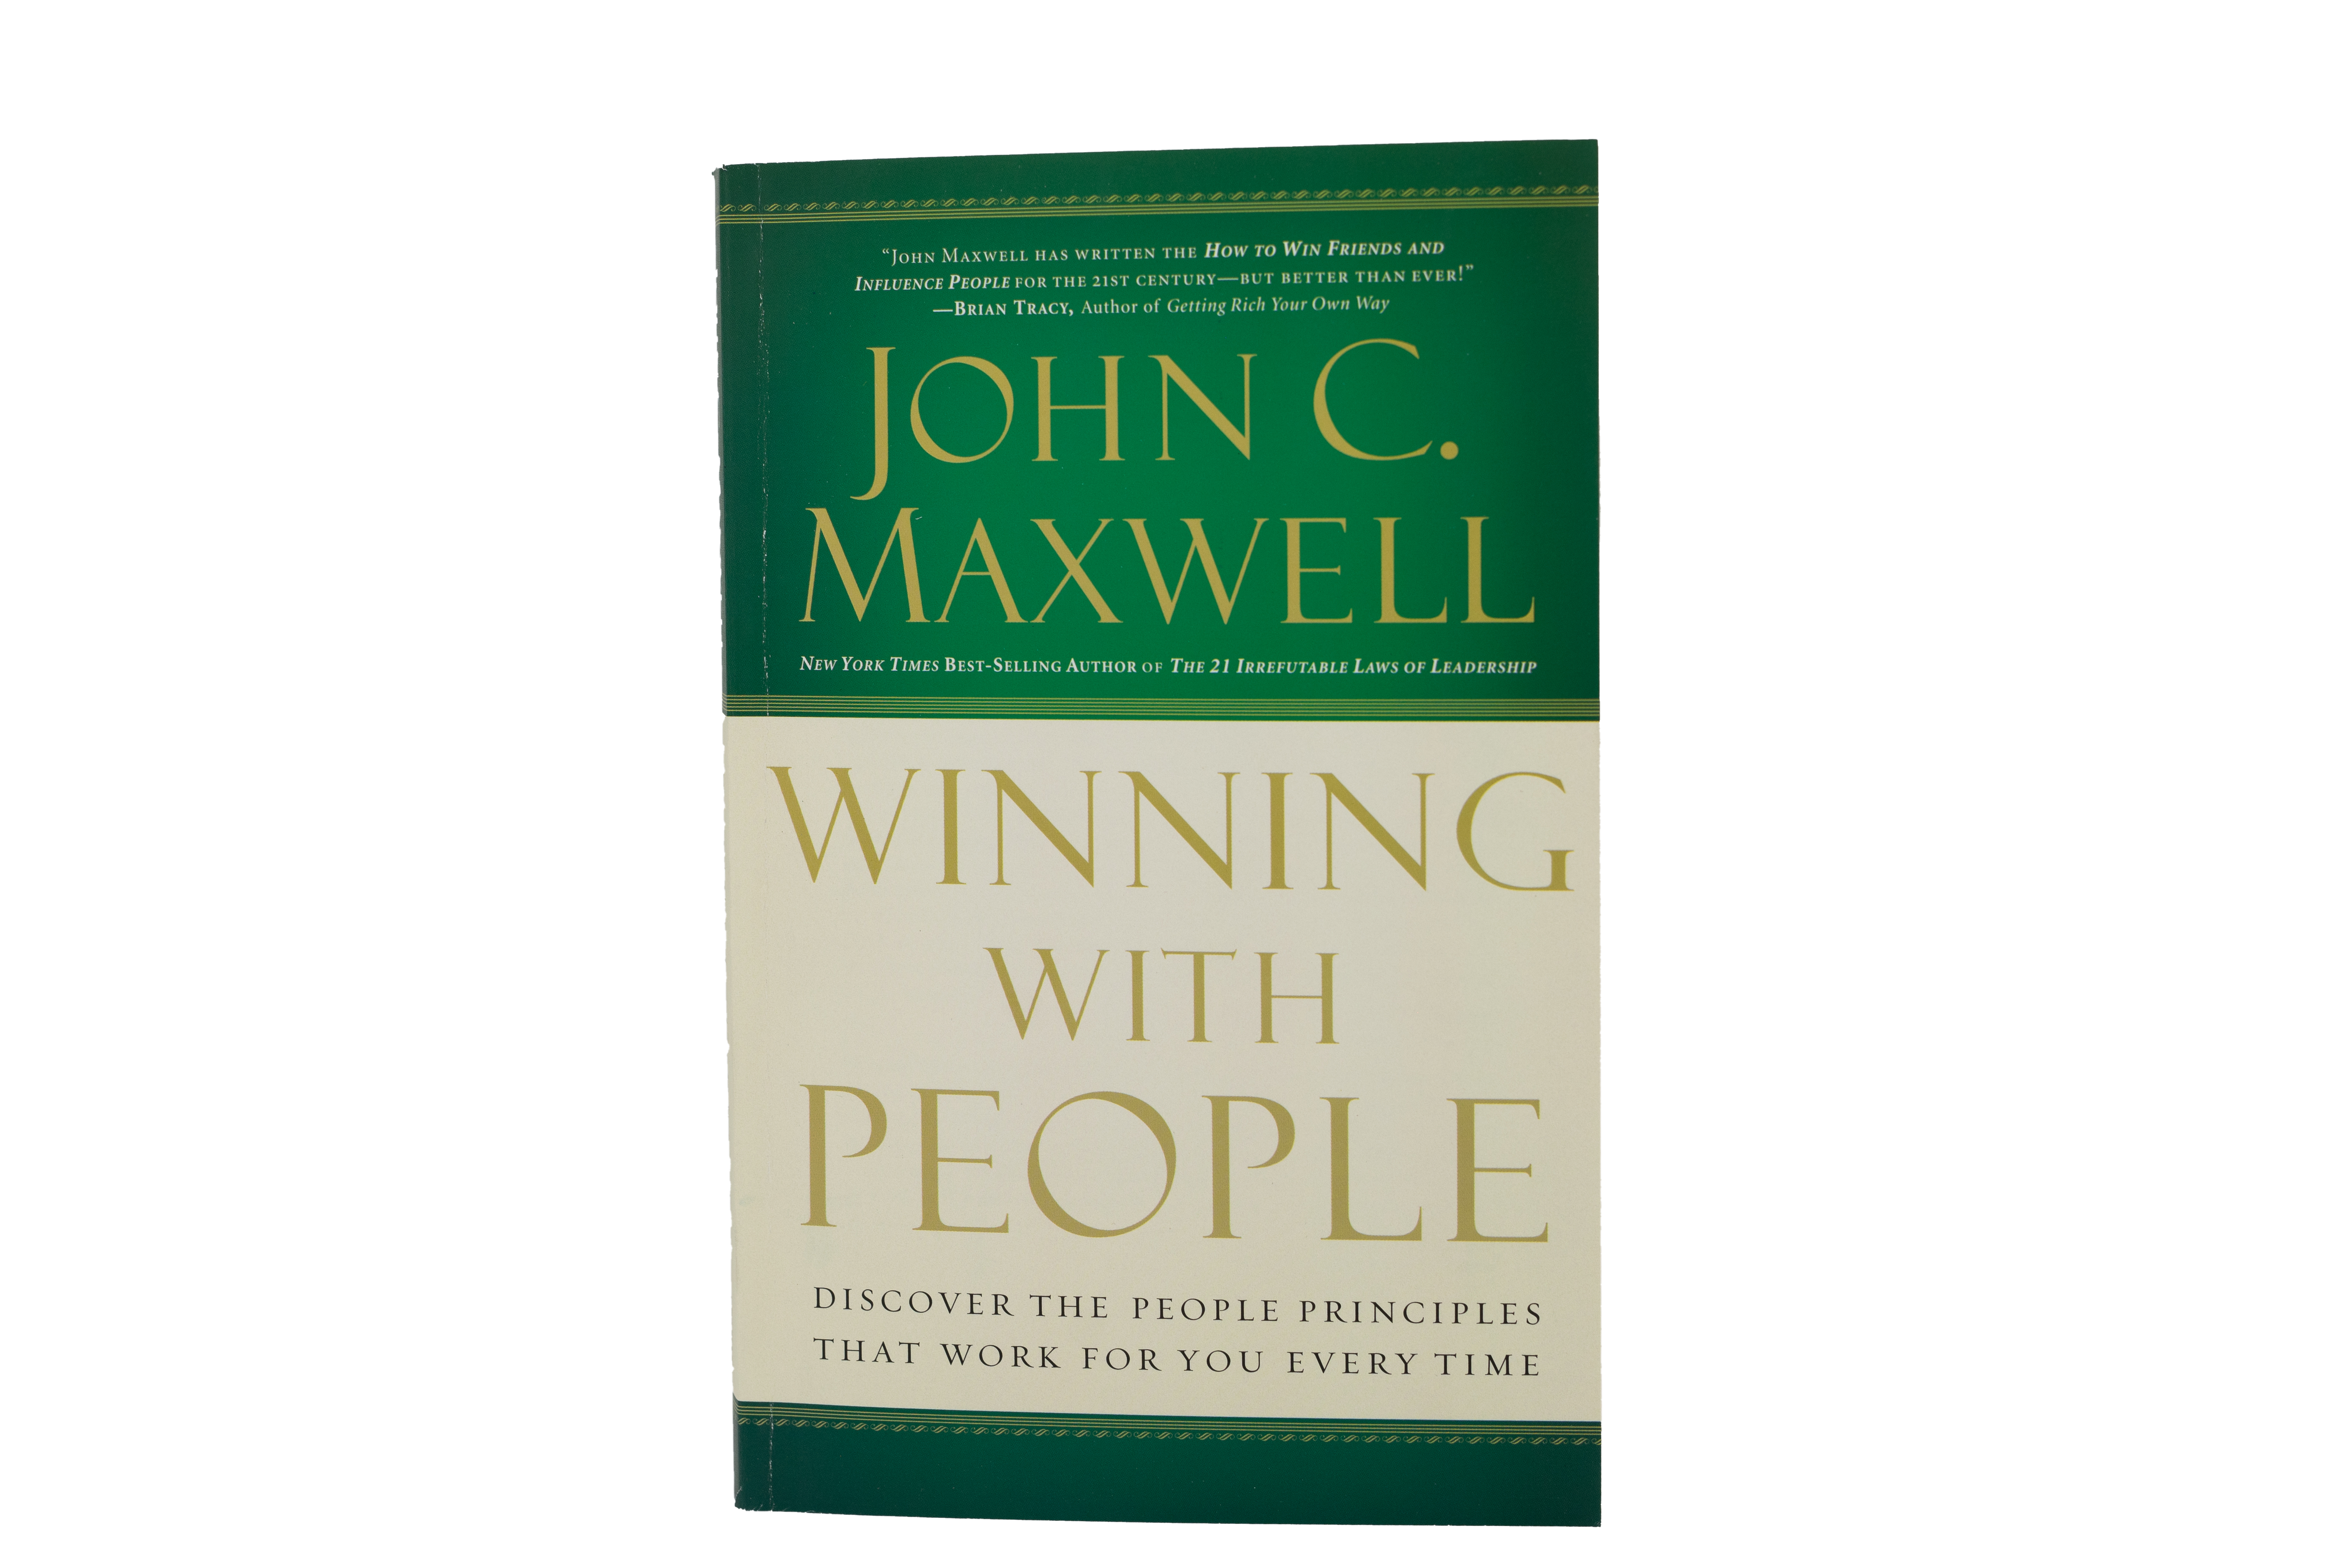 Winning With People [Paperback]